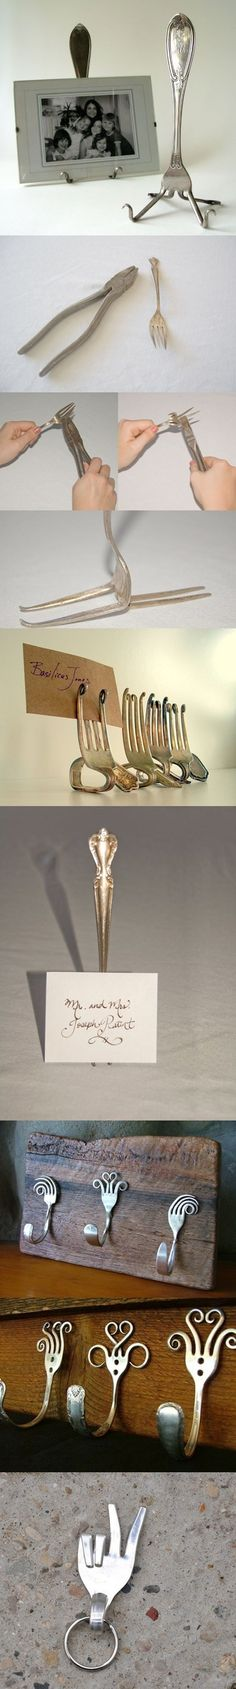 Ever wondered what to do with your old forks? Some great DIY ideas.